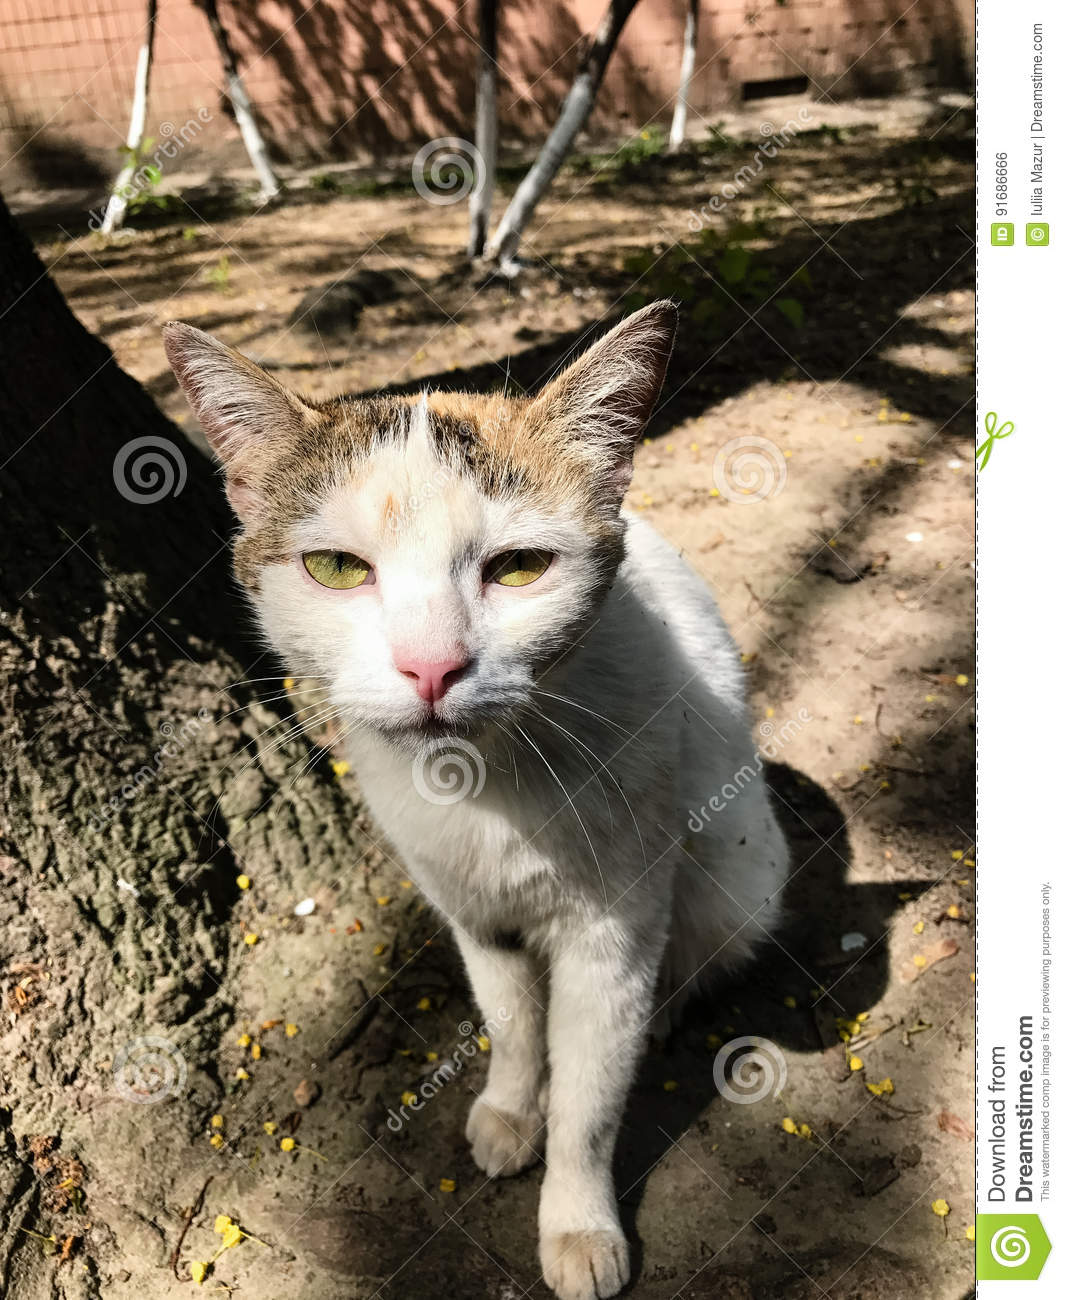 784 Ugly Cat Photos Free Royalty Free Stock Photos From Dreamstime